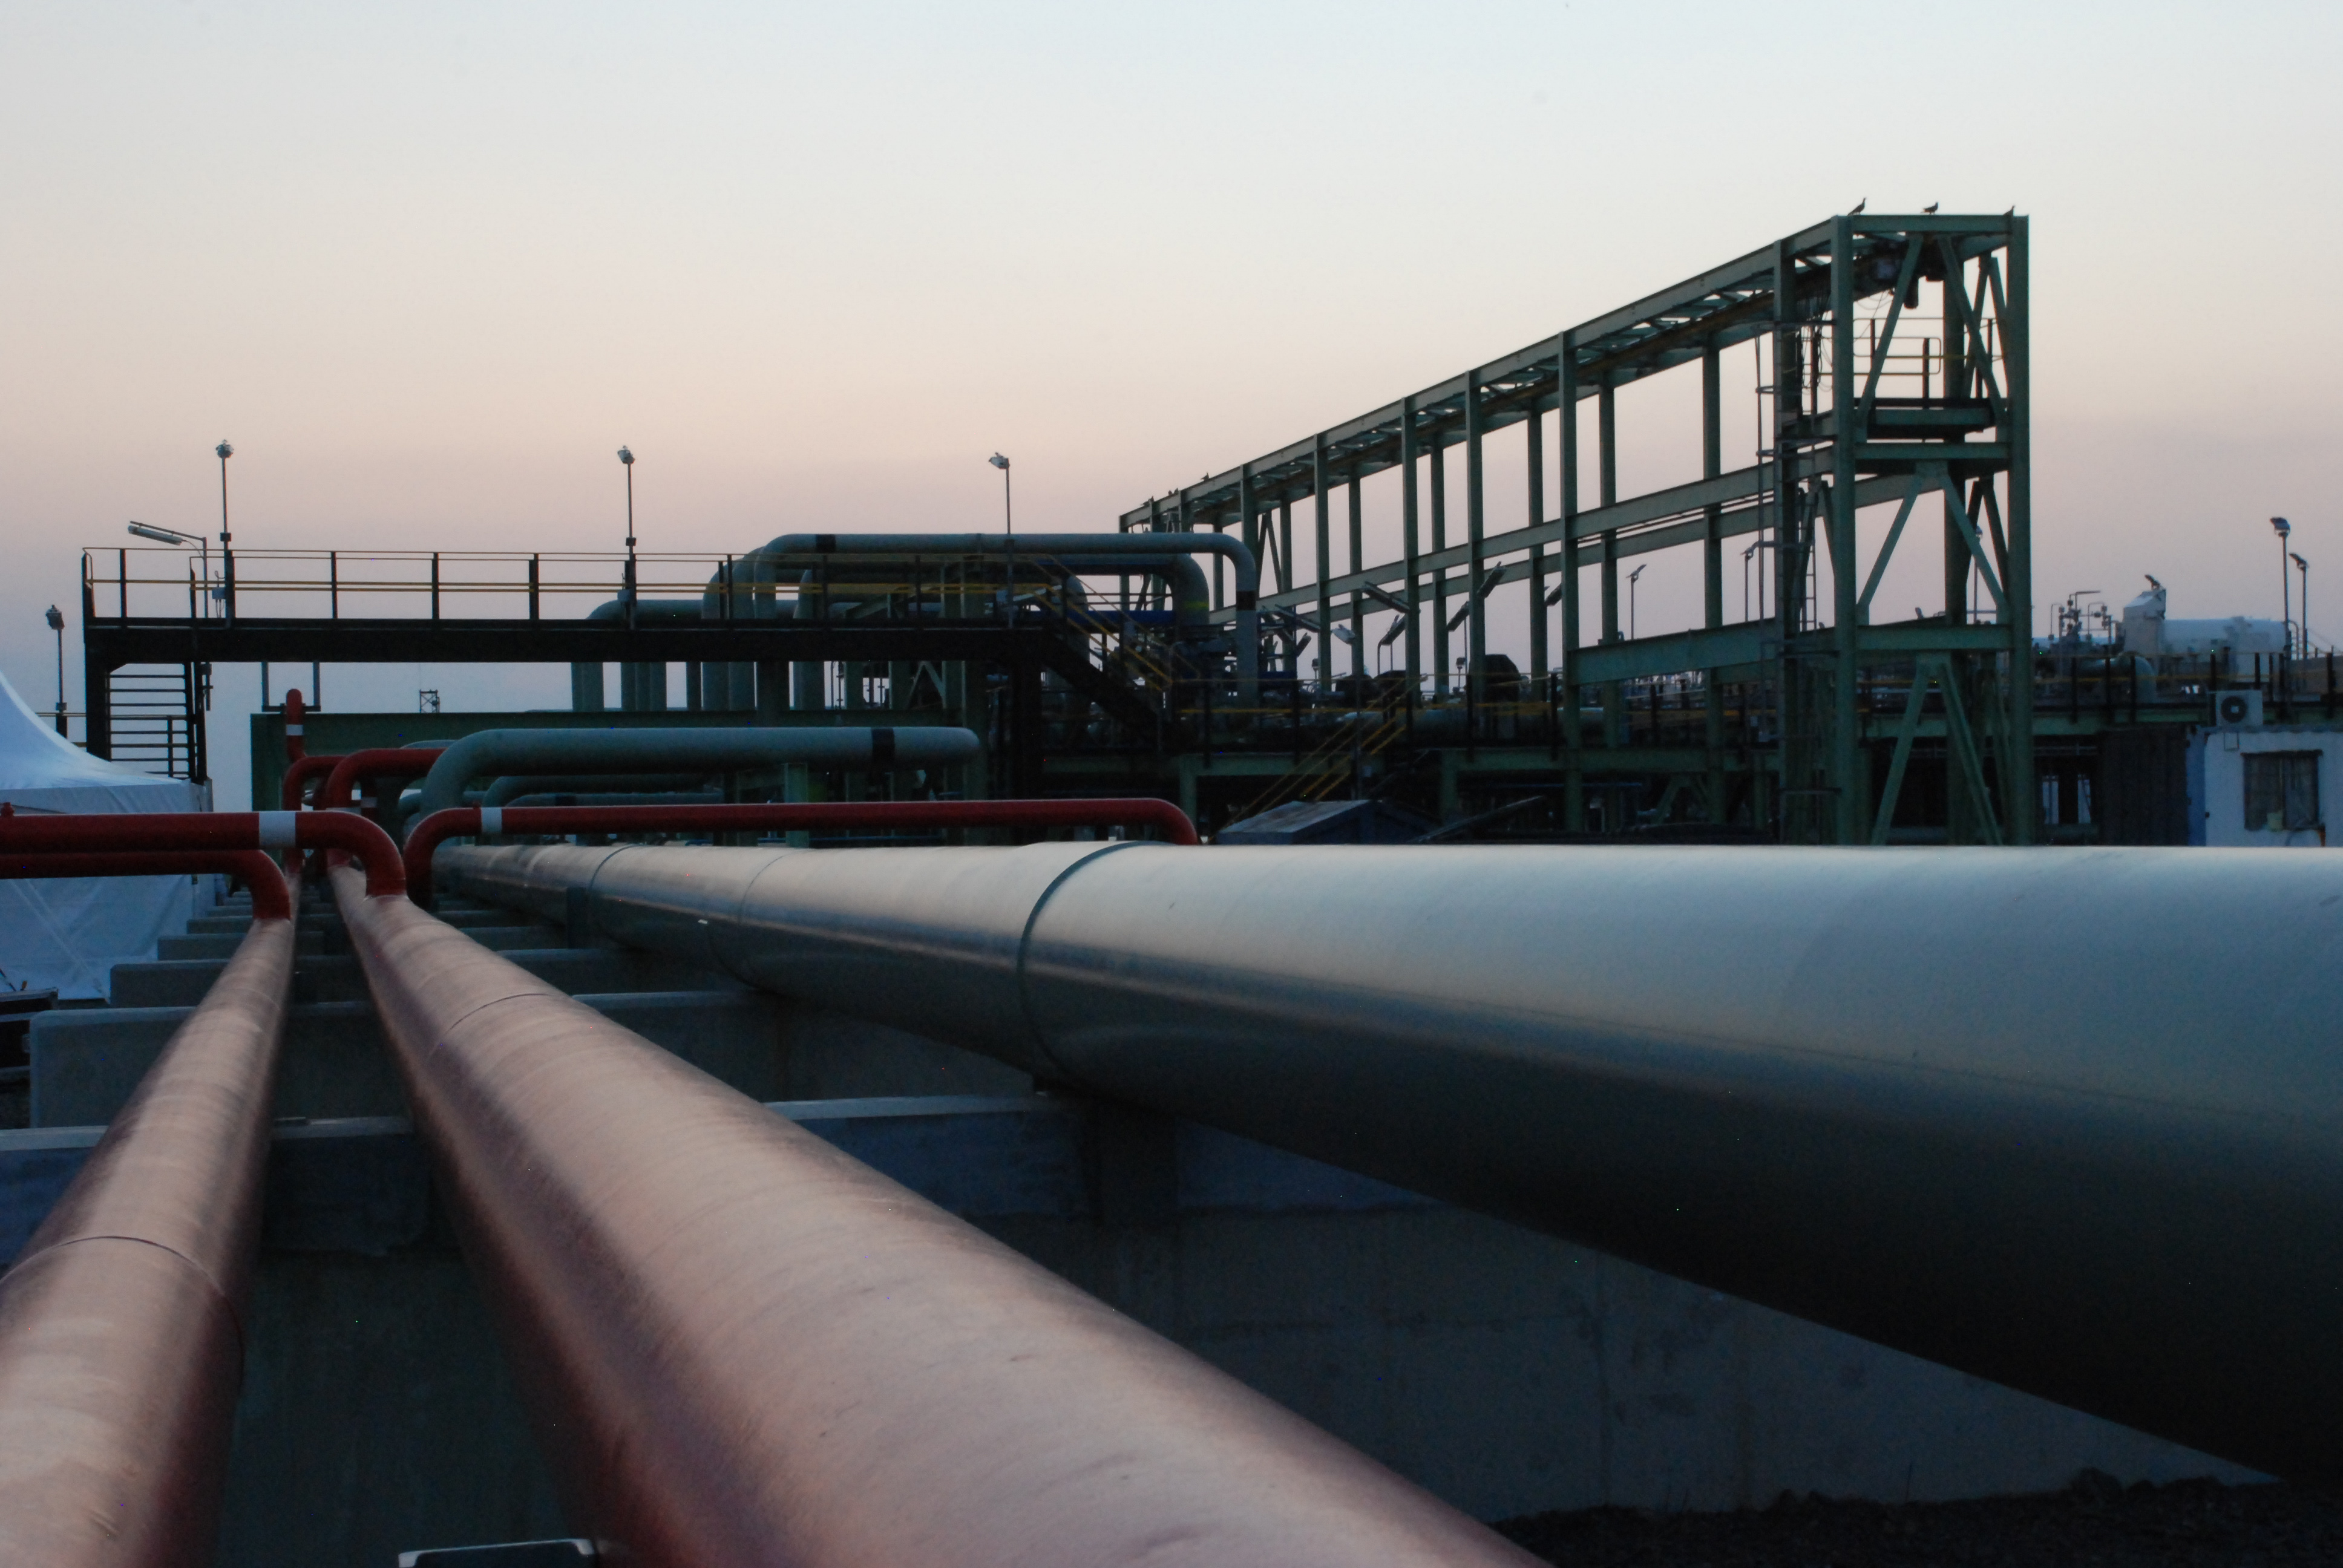 Fig. 2: Some of the fuel transport pipelines at Transnet's Jameson Park inland accumulation facility.